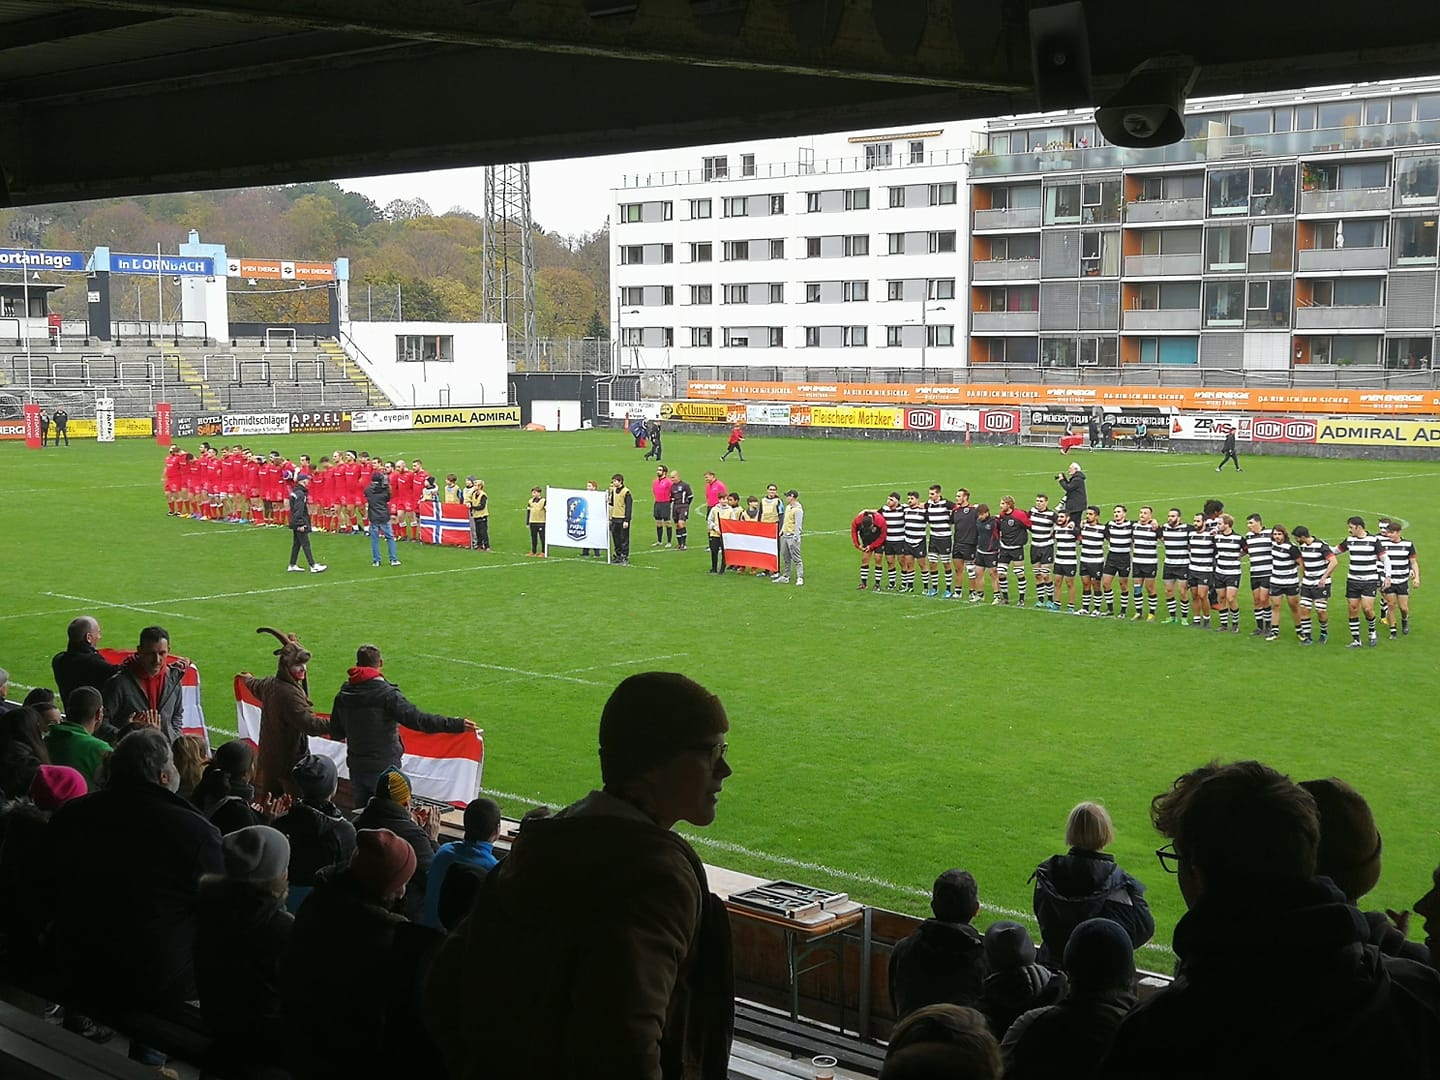 The teams line up for the national anthems